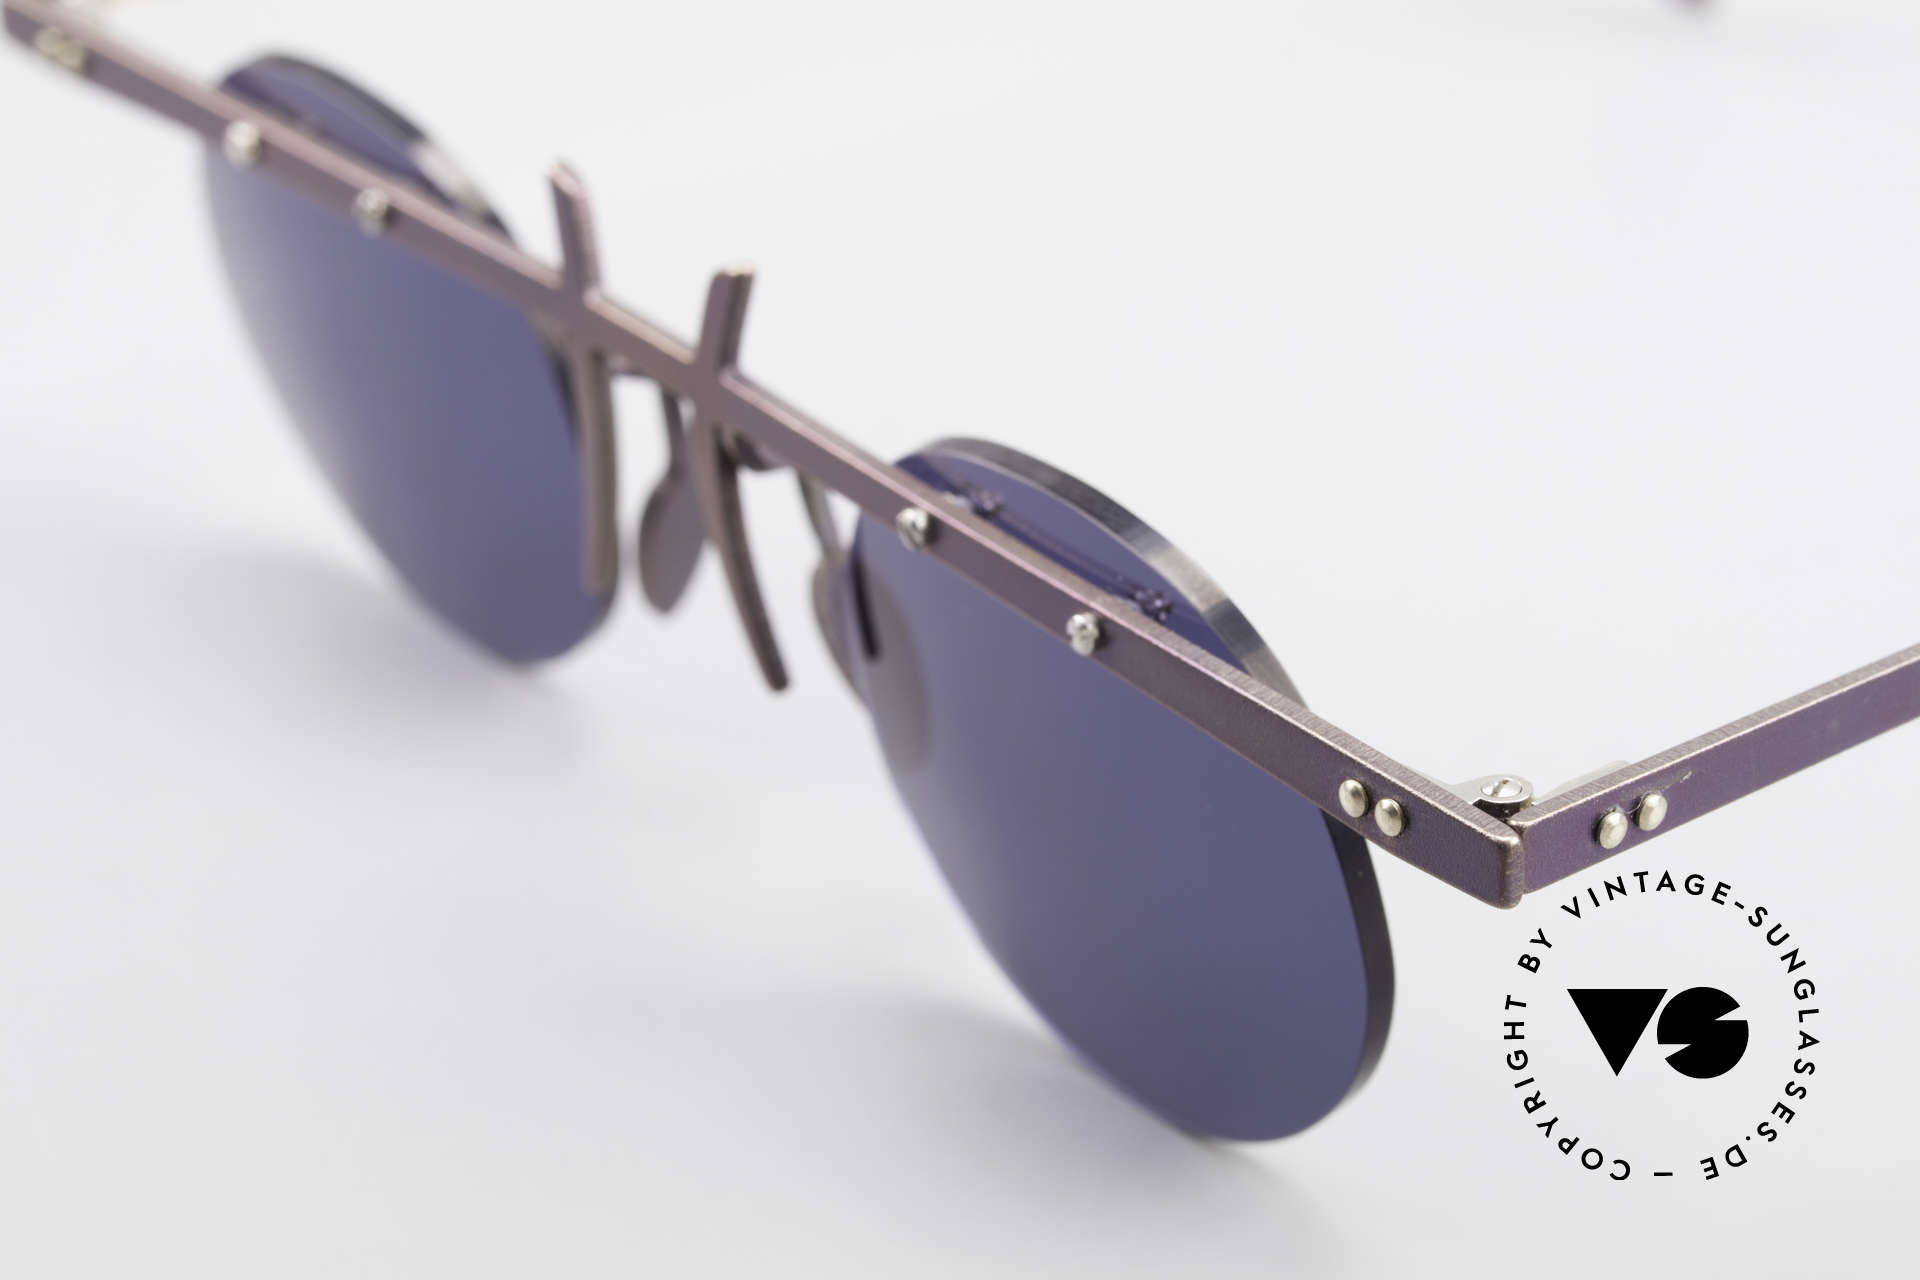 Theo Belgium Tita VI 4 Crazy Sunglasses Titanium 90s, the round sun lenses are fixed with screws at the frame, Made for Men and Women